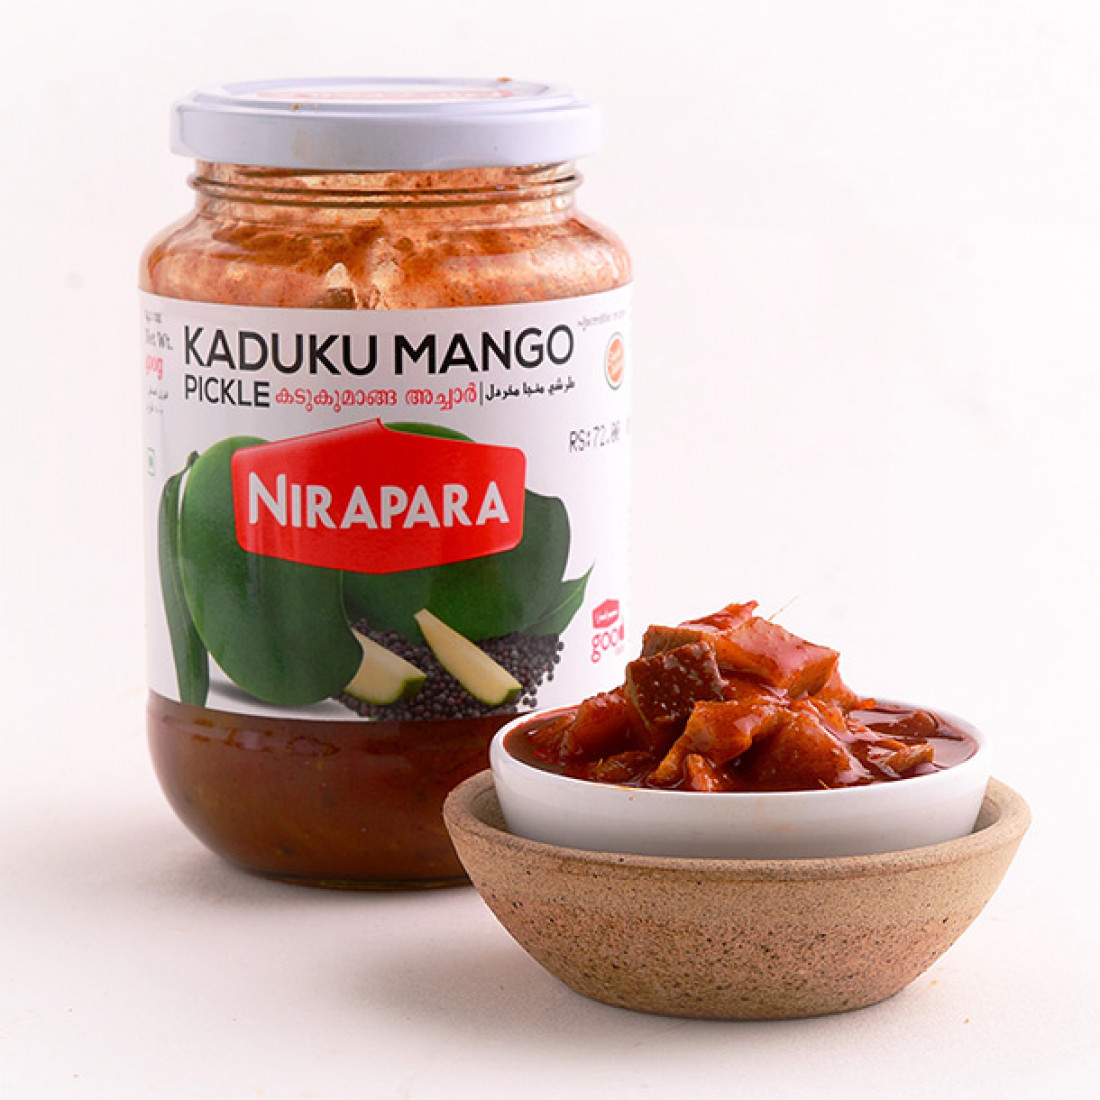 Kaduku Mango Pickle